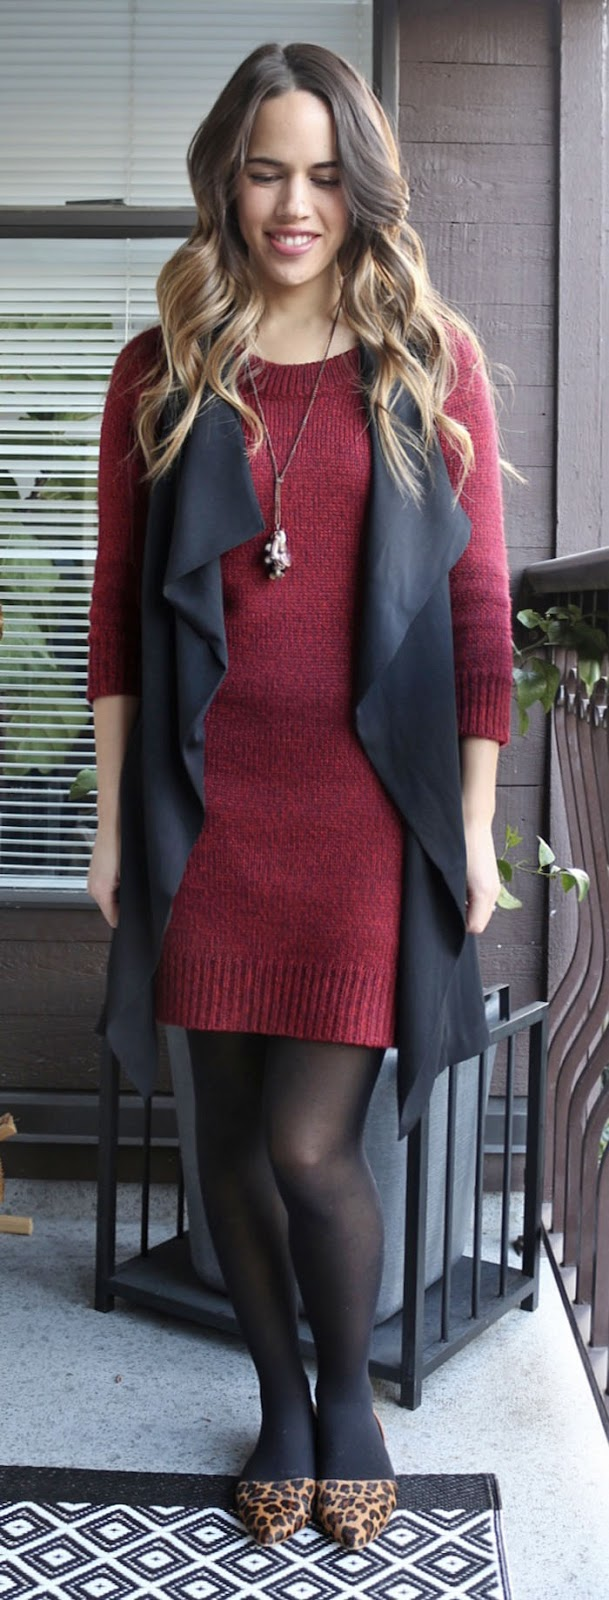 Jules in Flats - Joe Fresh Sweater Dress, Dynamite Waterfall Vest